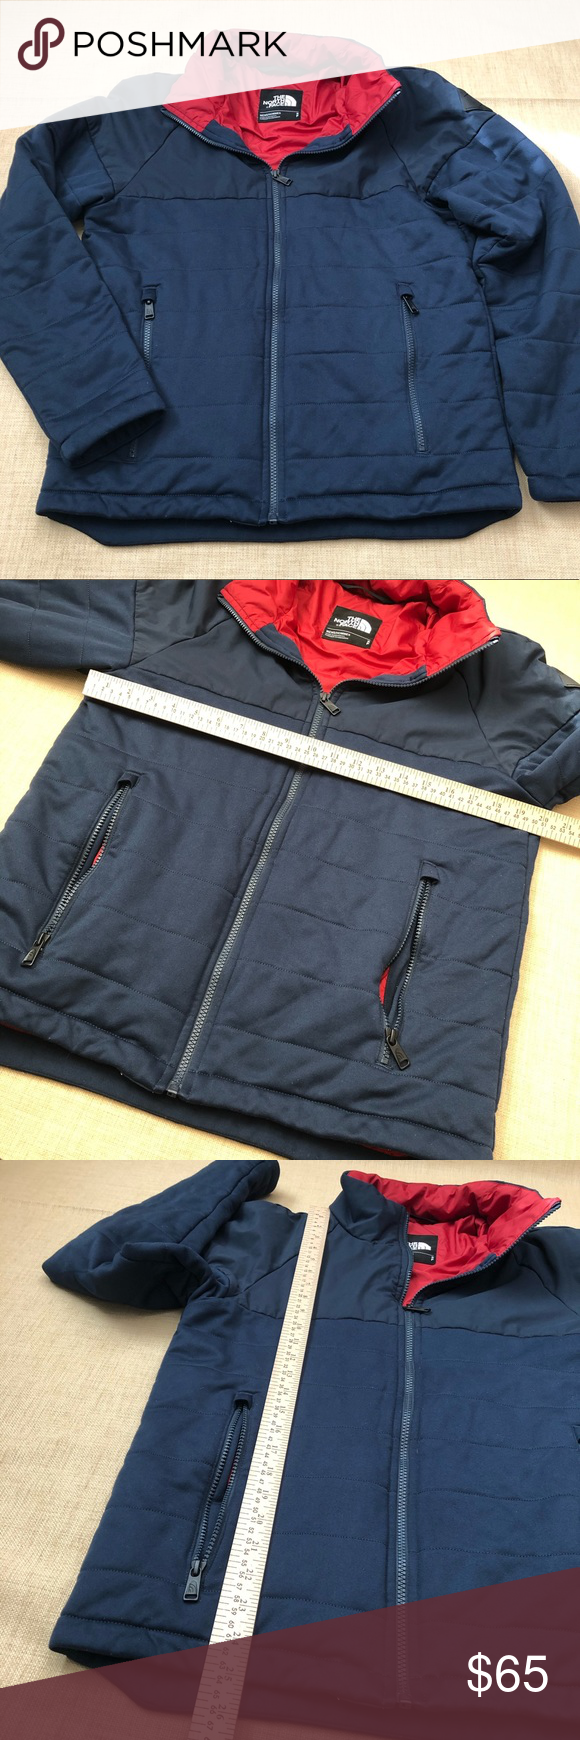 North Face Navy Red Skokie Insulated Full Zip Navy Blue Coat Blue Coats North Face Jacket [ 1740 x 580 Pixel ]